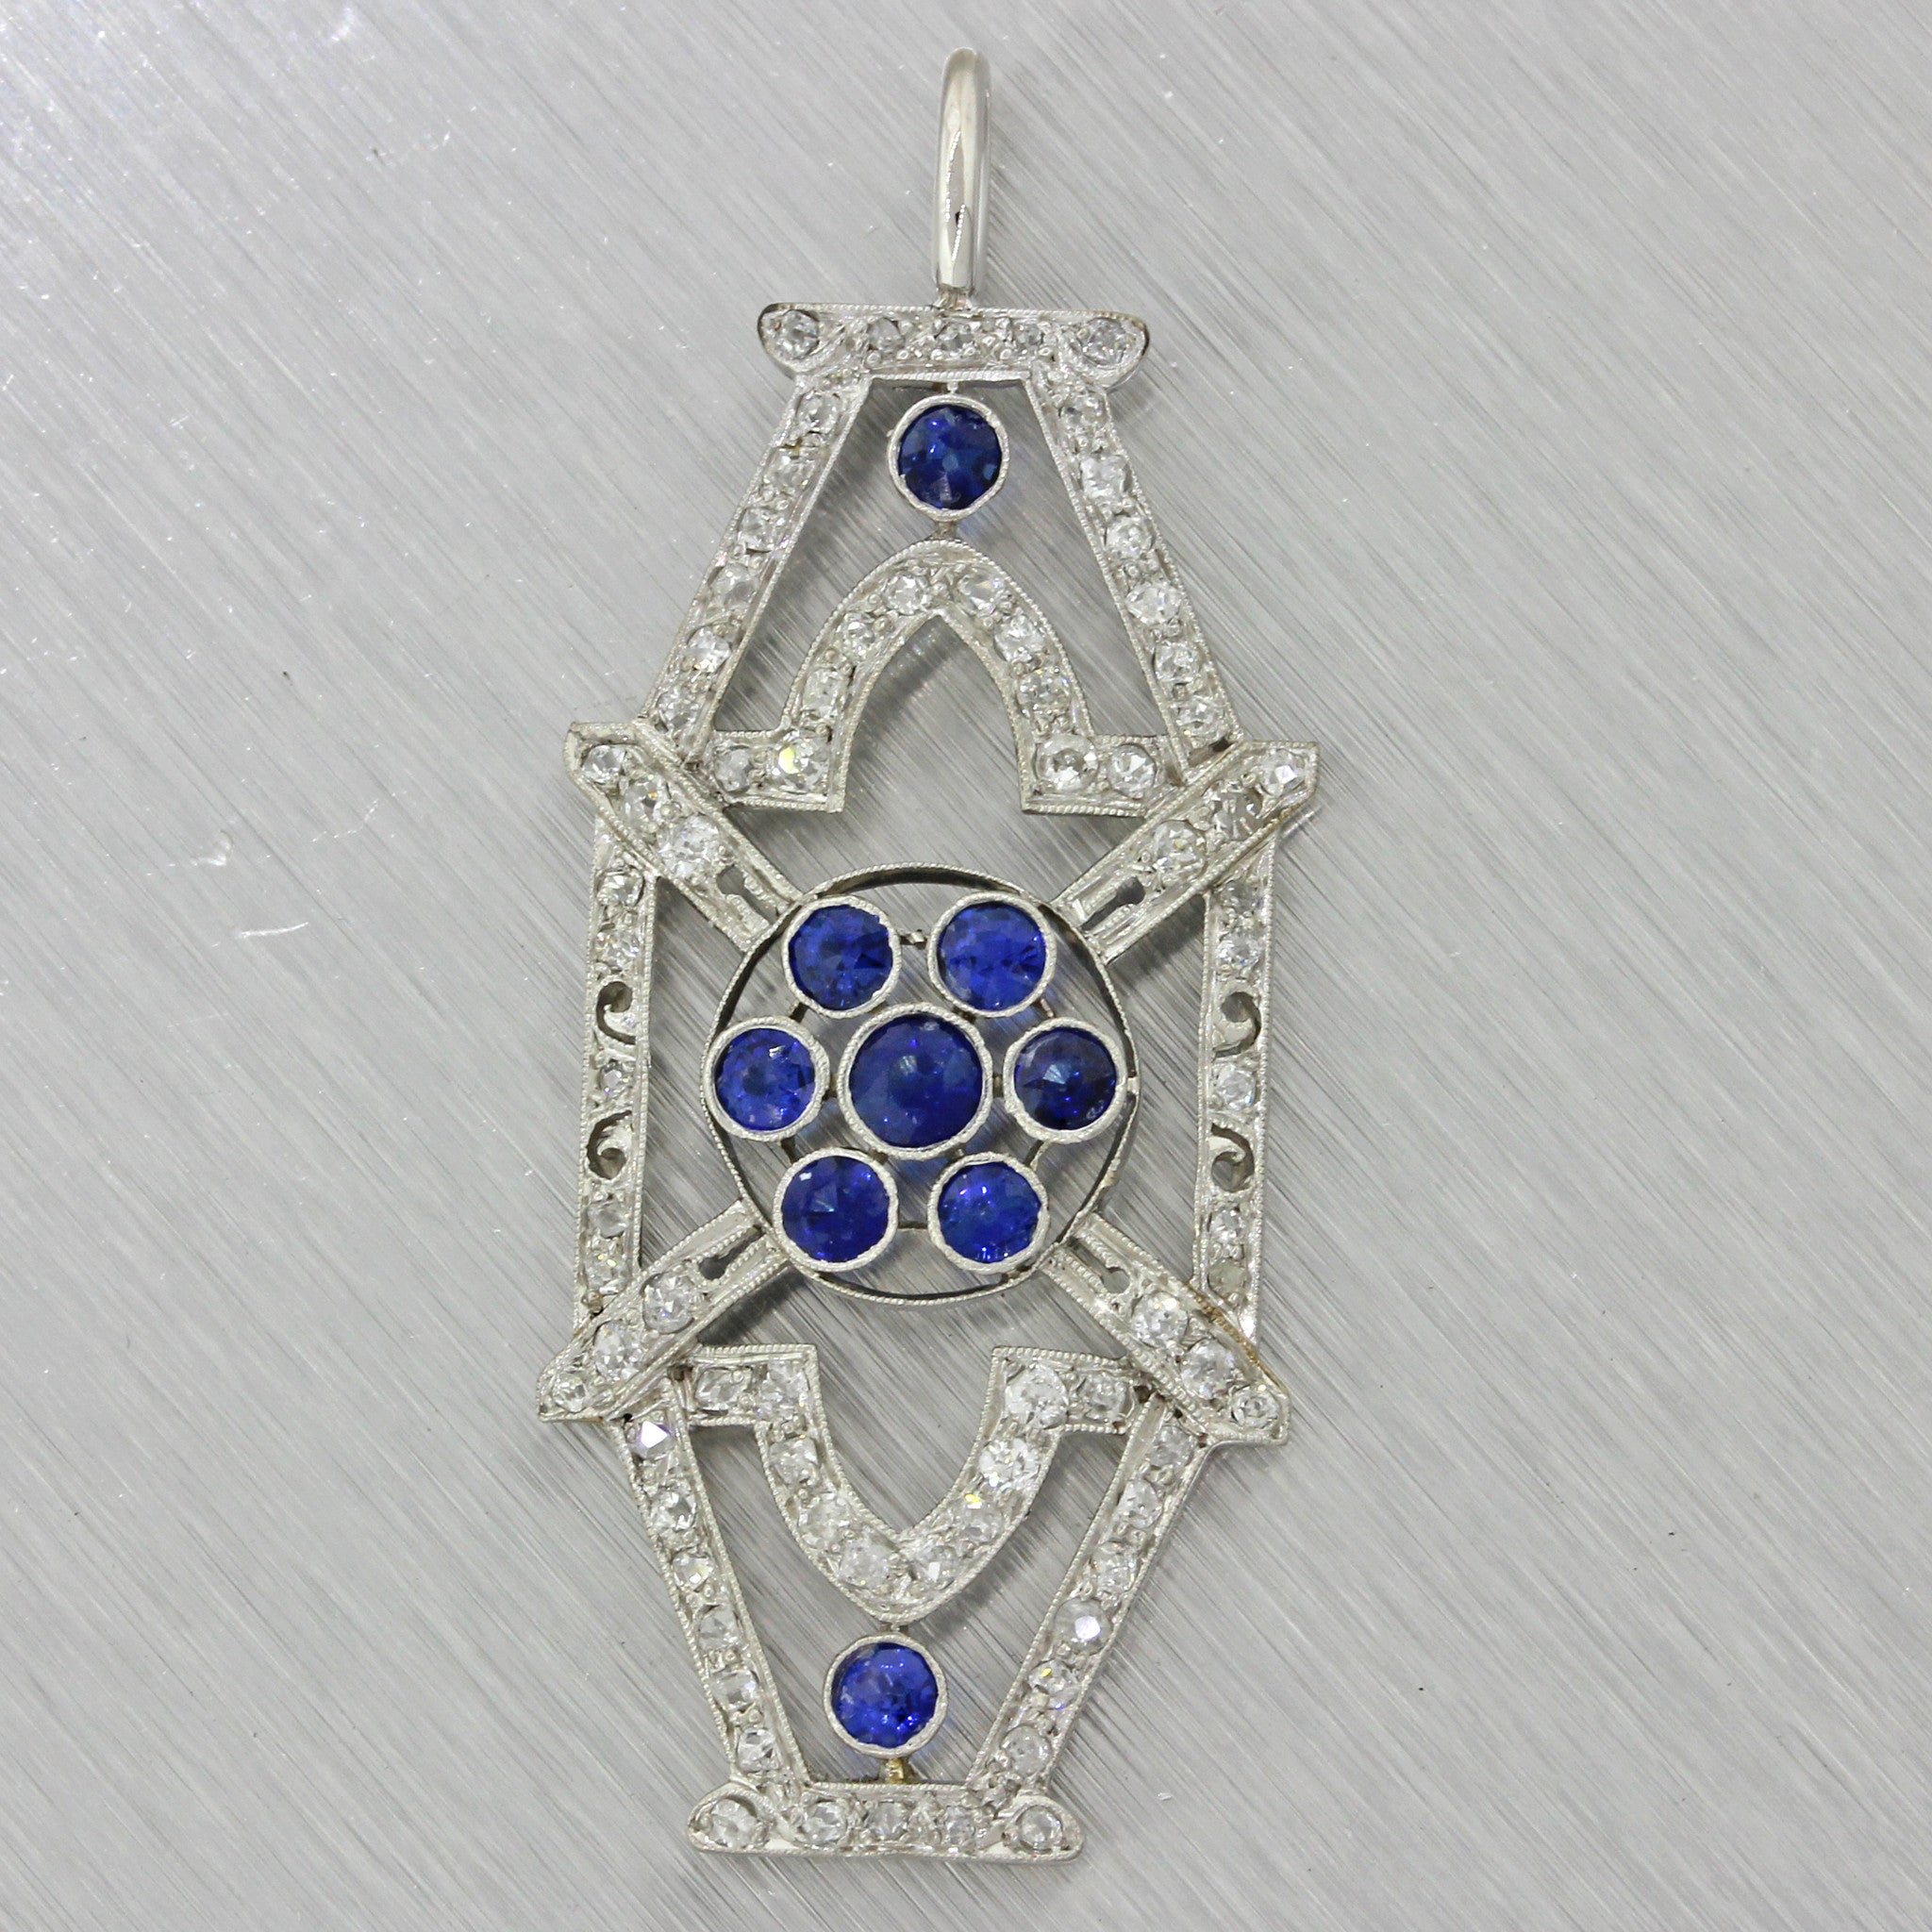 1930s Antique Art Deco Platinum 1.15ctw Diamond .65ctw Sapphire Brooch Pin